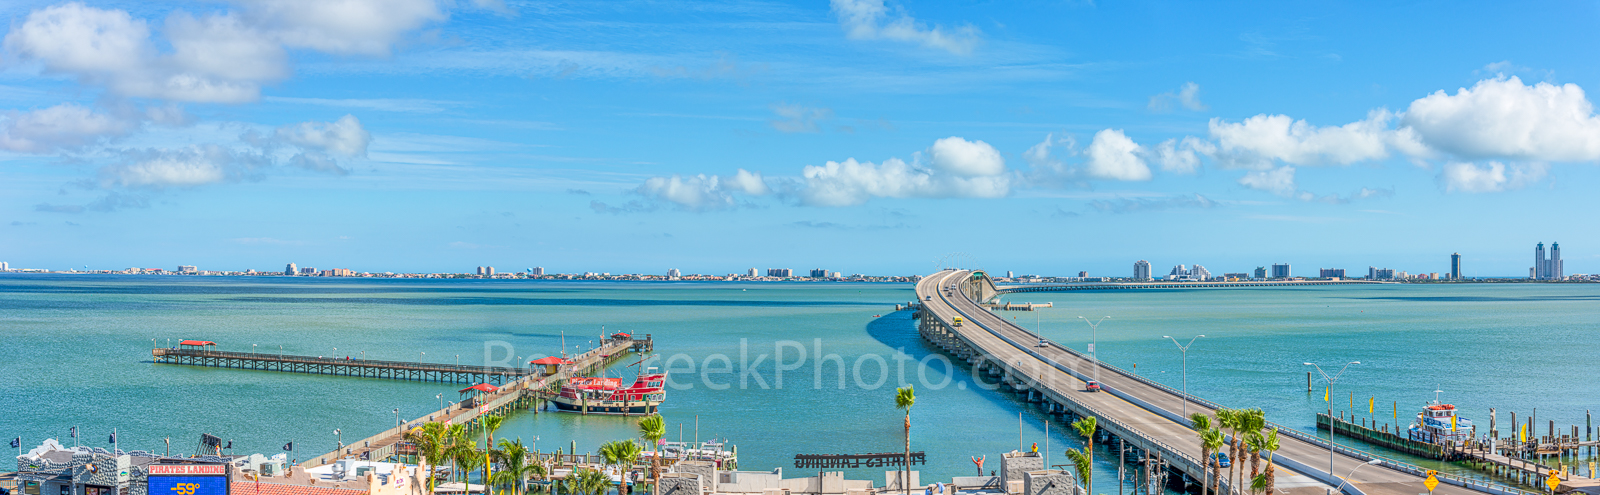 Port Isabell, Texas, Ocean, Bridge to Padre Island, Queen Isabella Memorial Causeway, south padre island, island, water, beach, view of padre island, view of causeway to Padre island, padre island, te, photo